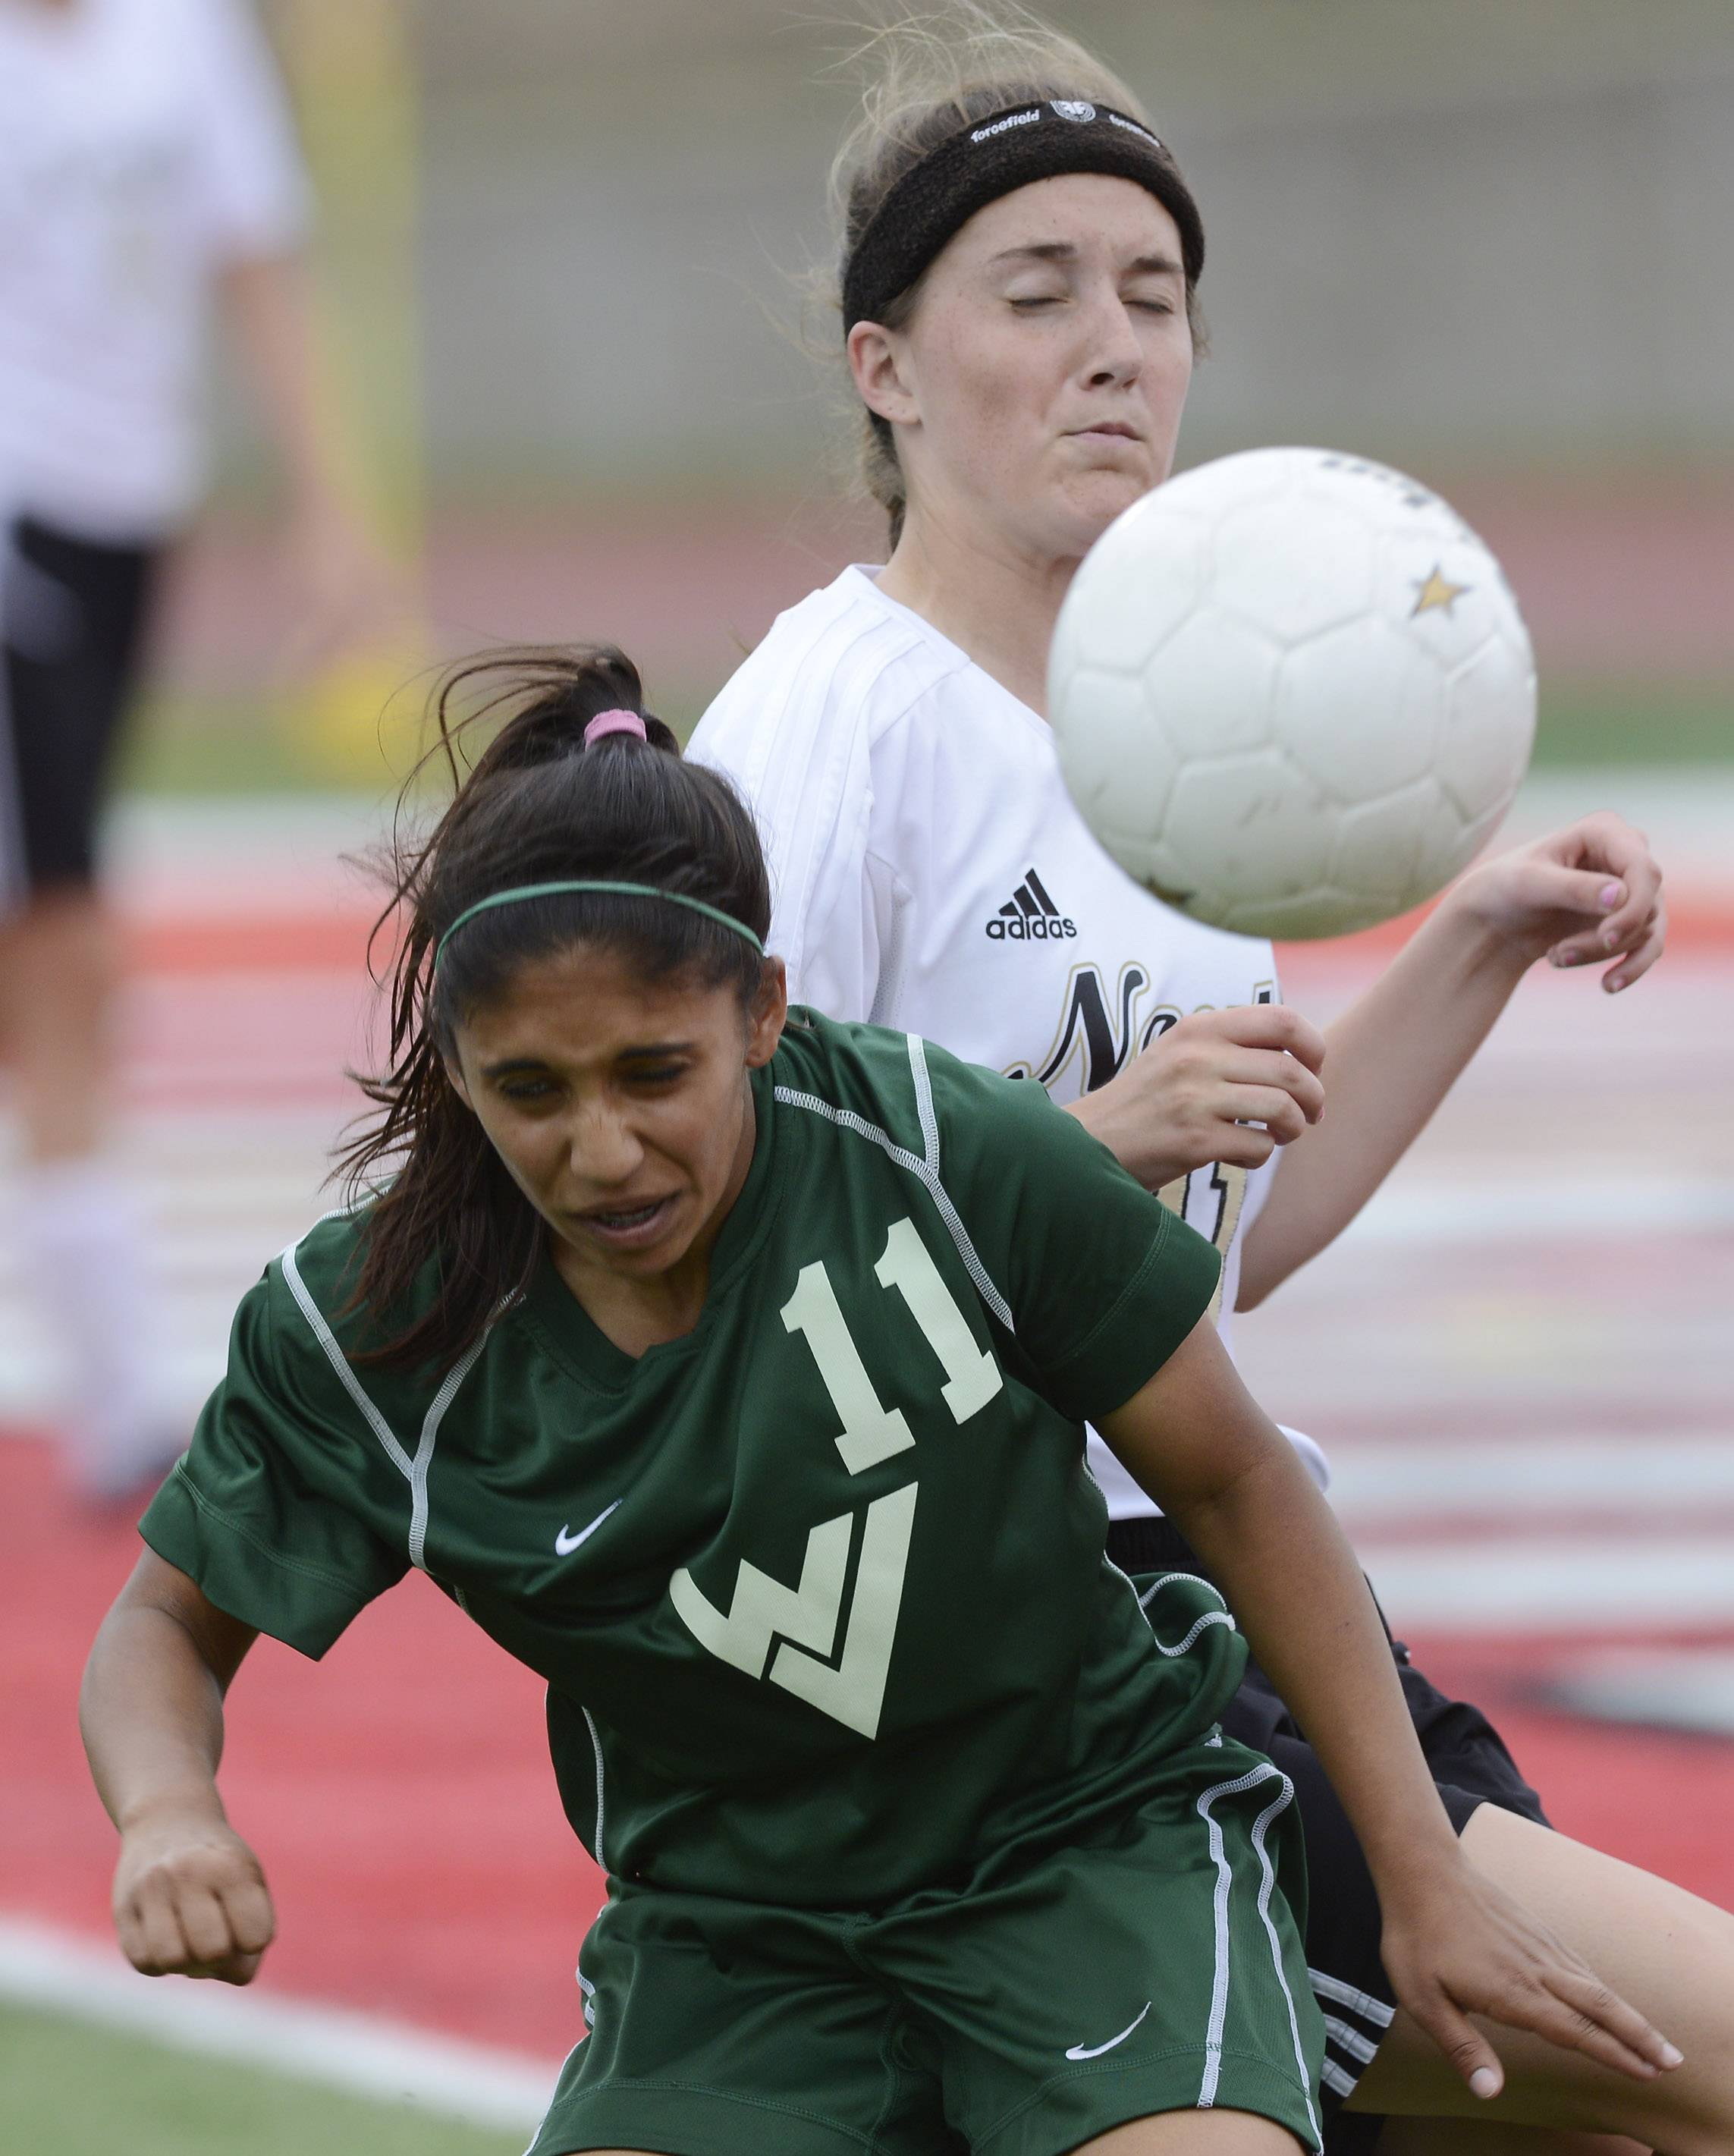 CiCi Gazder of Waubonsie Valley gets in front of Carly Marchal of Lincol-Way North during the girls soccer Class 3A state third-place game at North Central College in Naperville Saturday.